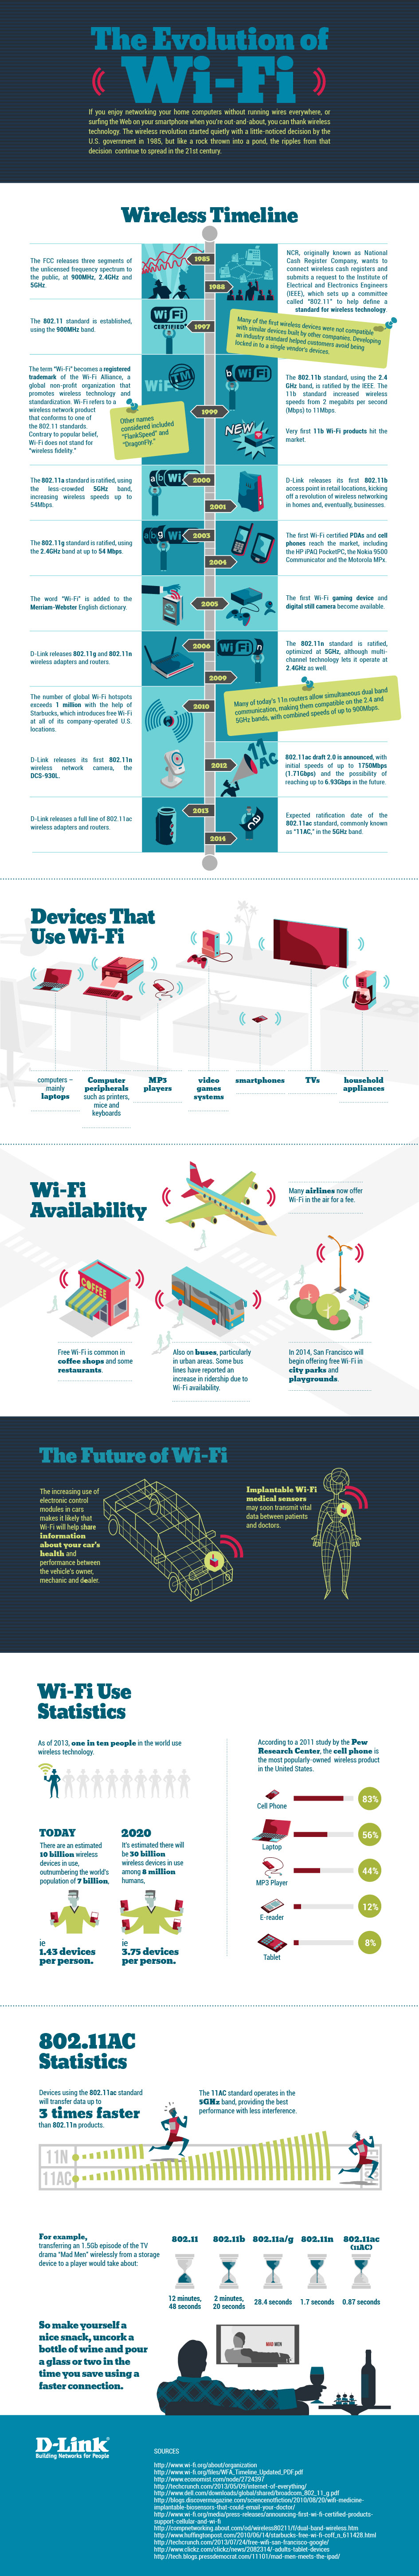 How Wi-Fi Technology has evolved over the Years